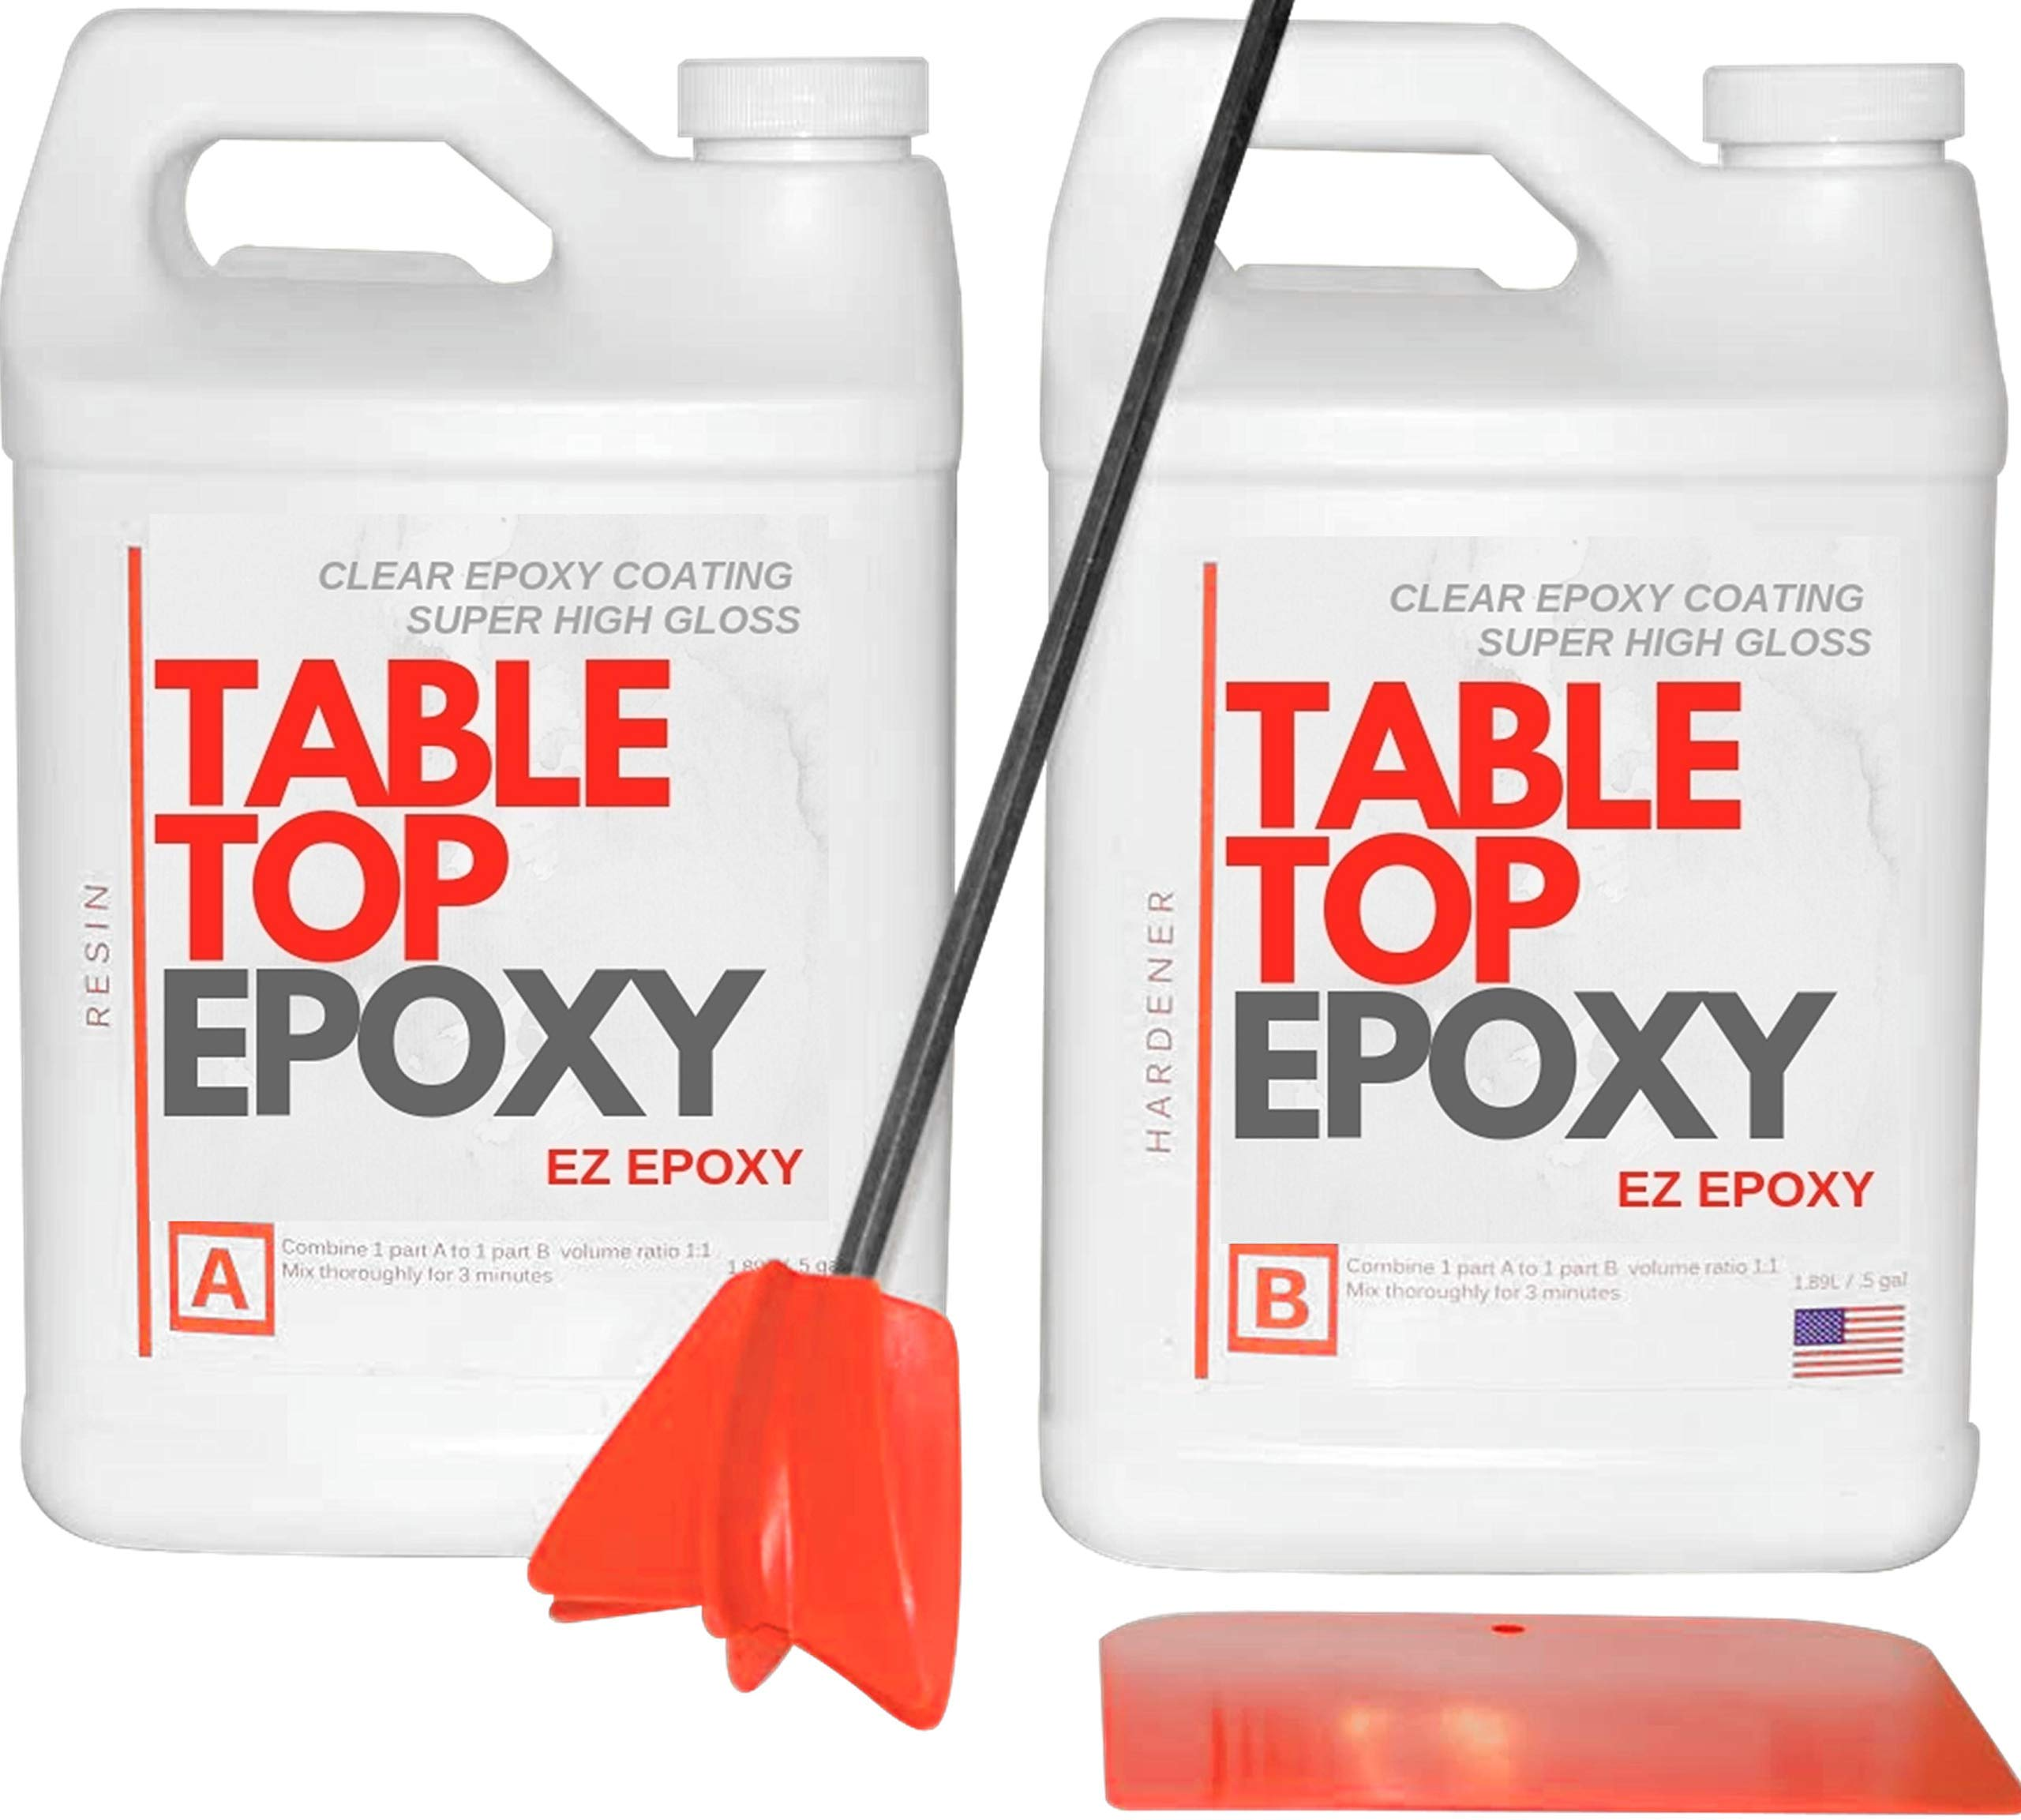 Crystal Clear Epoxy Resin -1 Gallon Epoxy kit -Coating for Tabletops, Bar Tops, Crafting - 2 Part Epoxy Resin - UV Protection & NO VOC - High-Gloss & Low-Odor